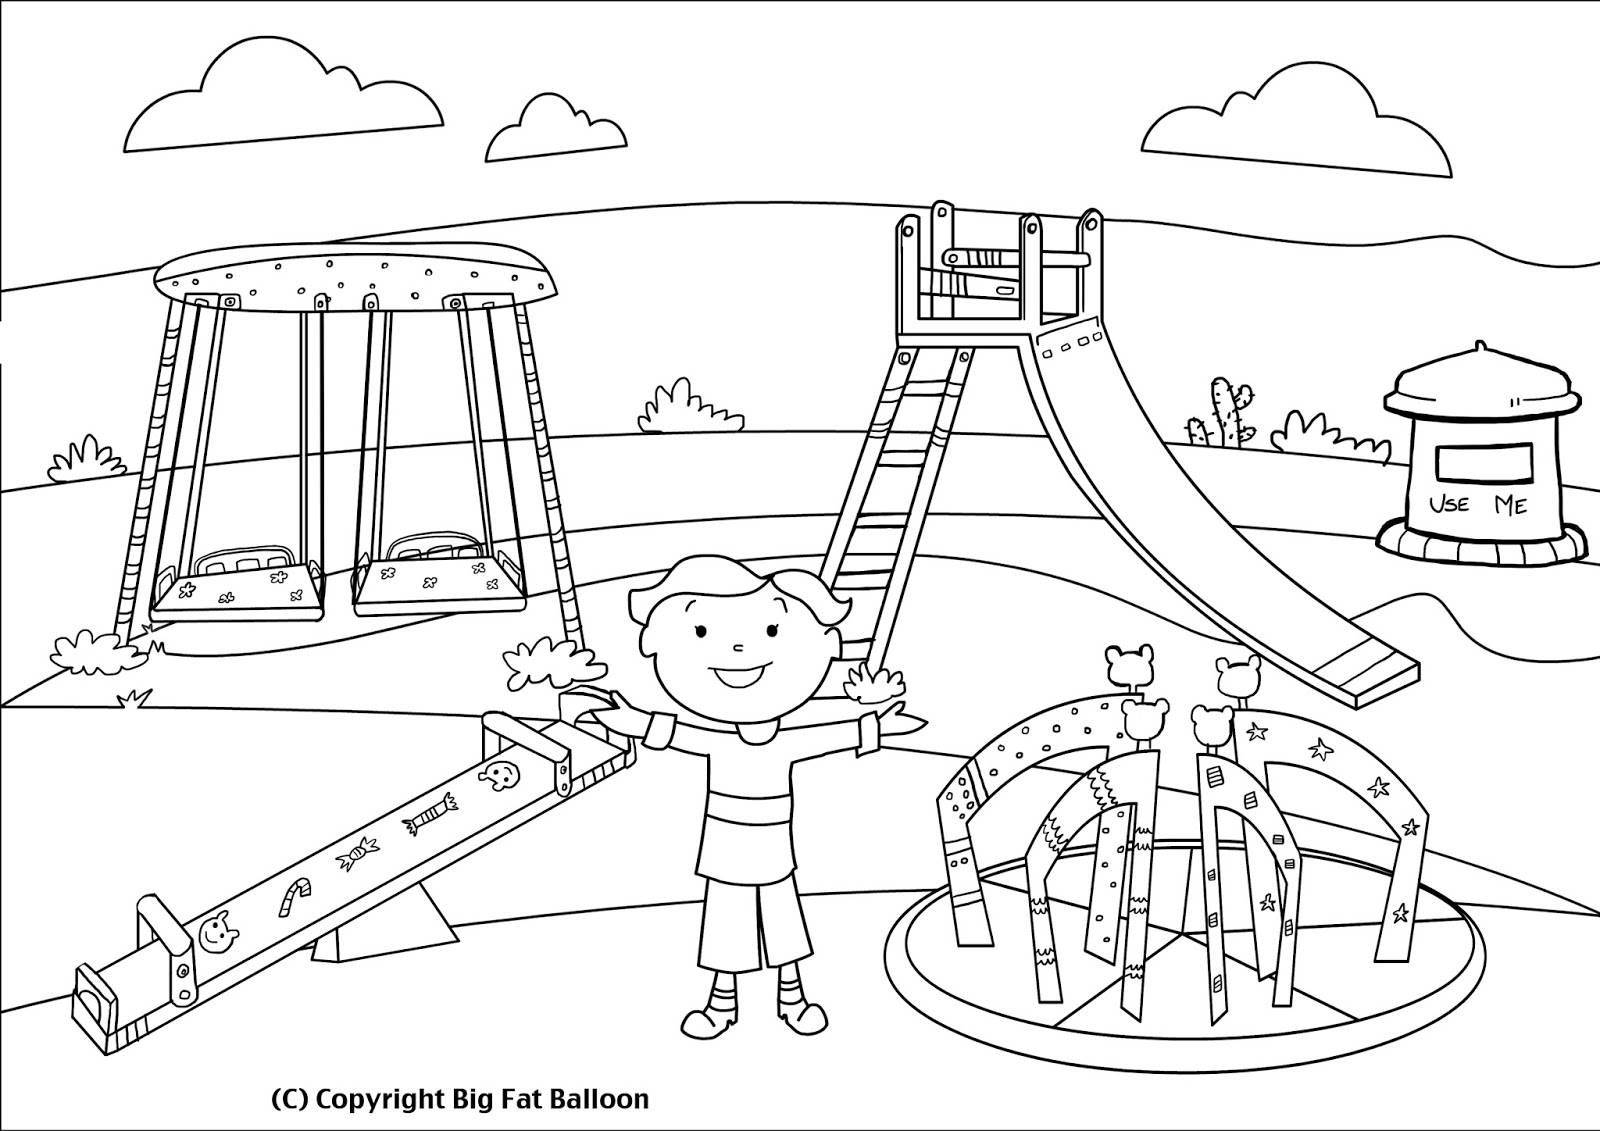 Park Drawing At Free For Personal Use Simple Circuit Board Kids Galleryhipcom The Hippest Galleries 1600x1131 7f0762mtwyuhe6qv2ctkiaaaaaaaacqc